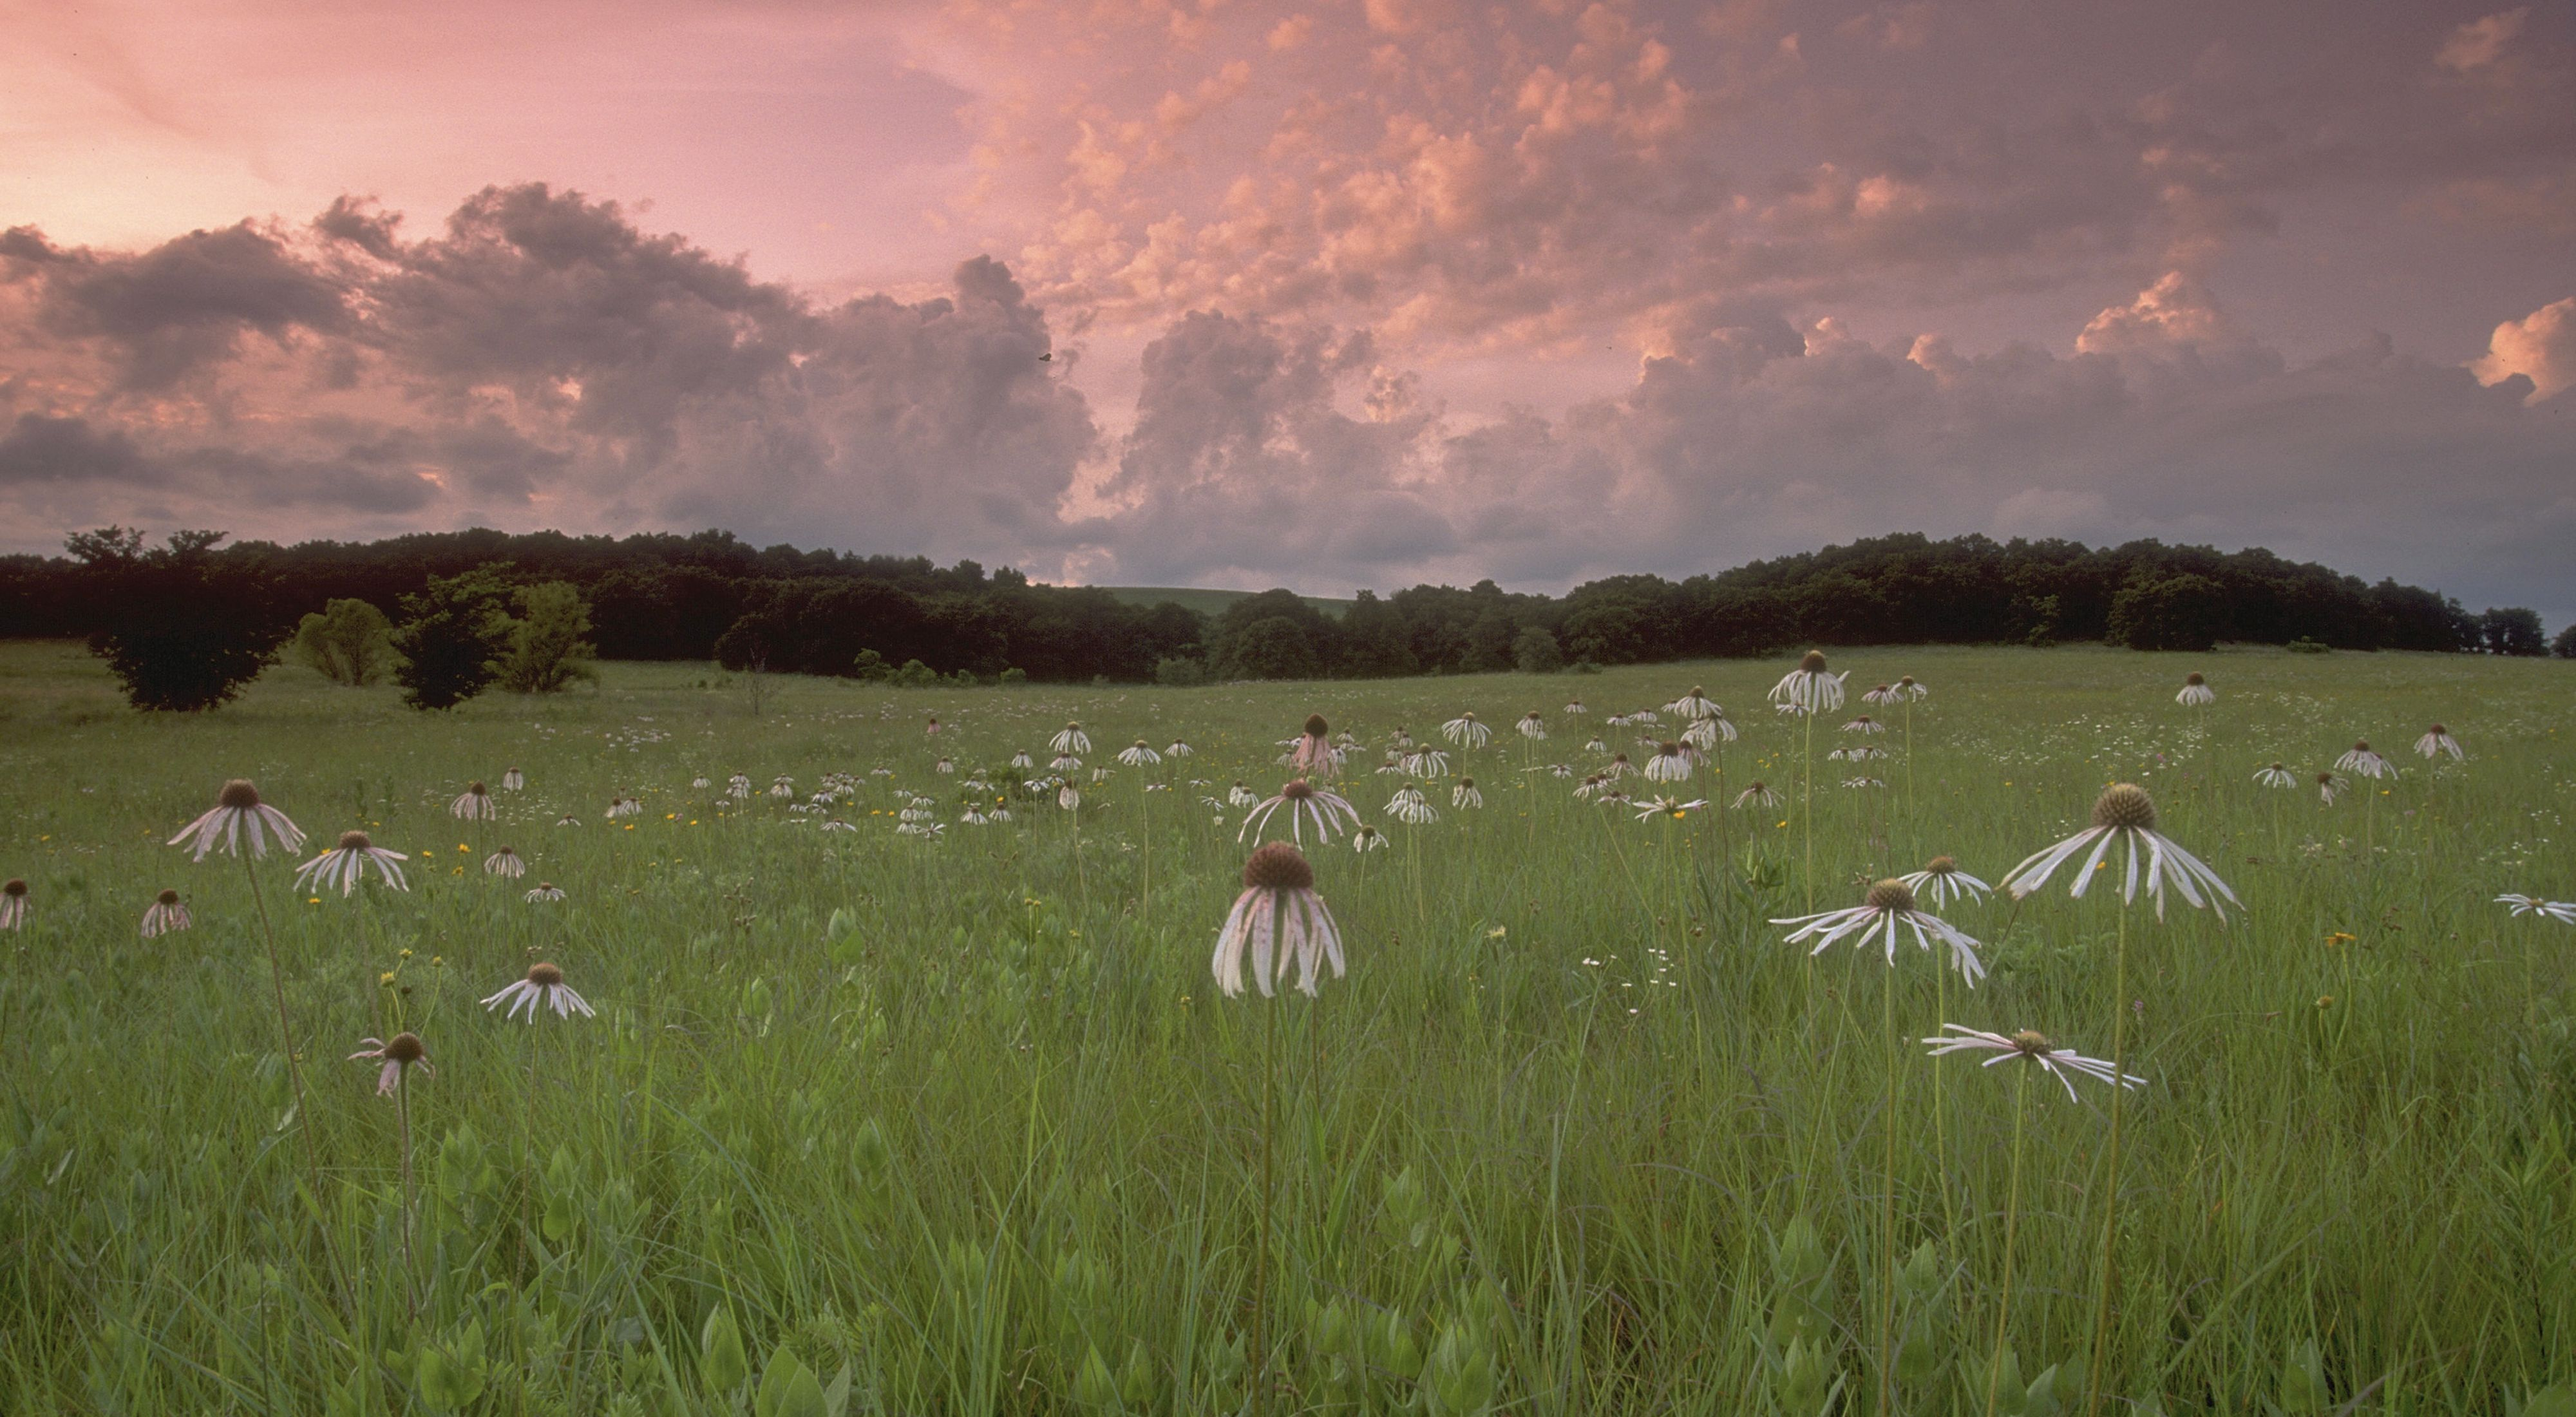 Field of coneflowers at sunset.